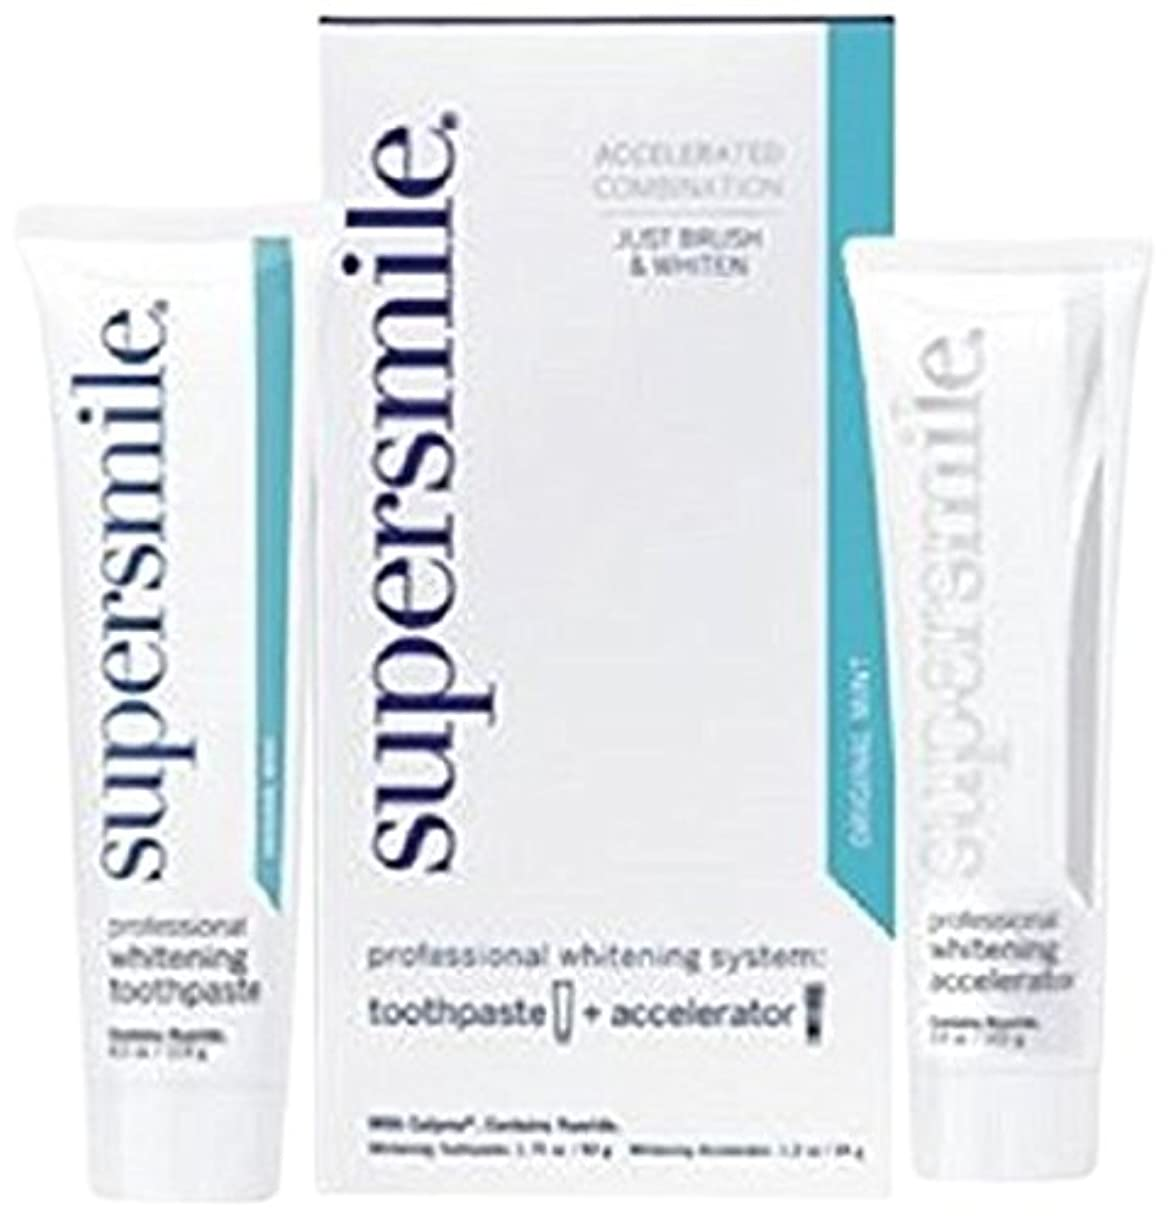 Supersmile Professional Whitening System: Toothpaste 50g/1.75oz + Accelerator 34g/1.2oz - 2pcs by SuperSmile